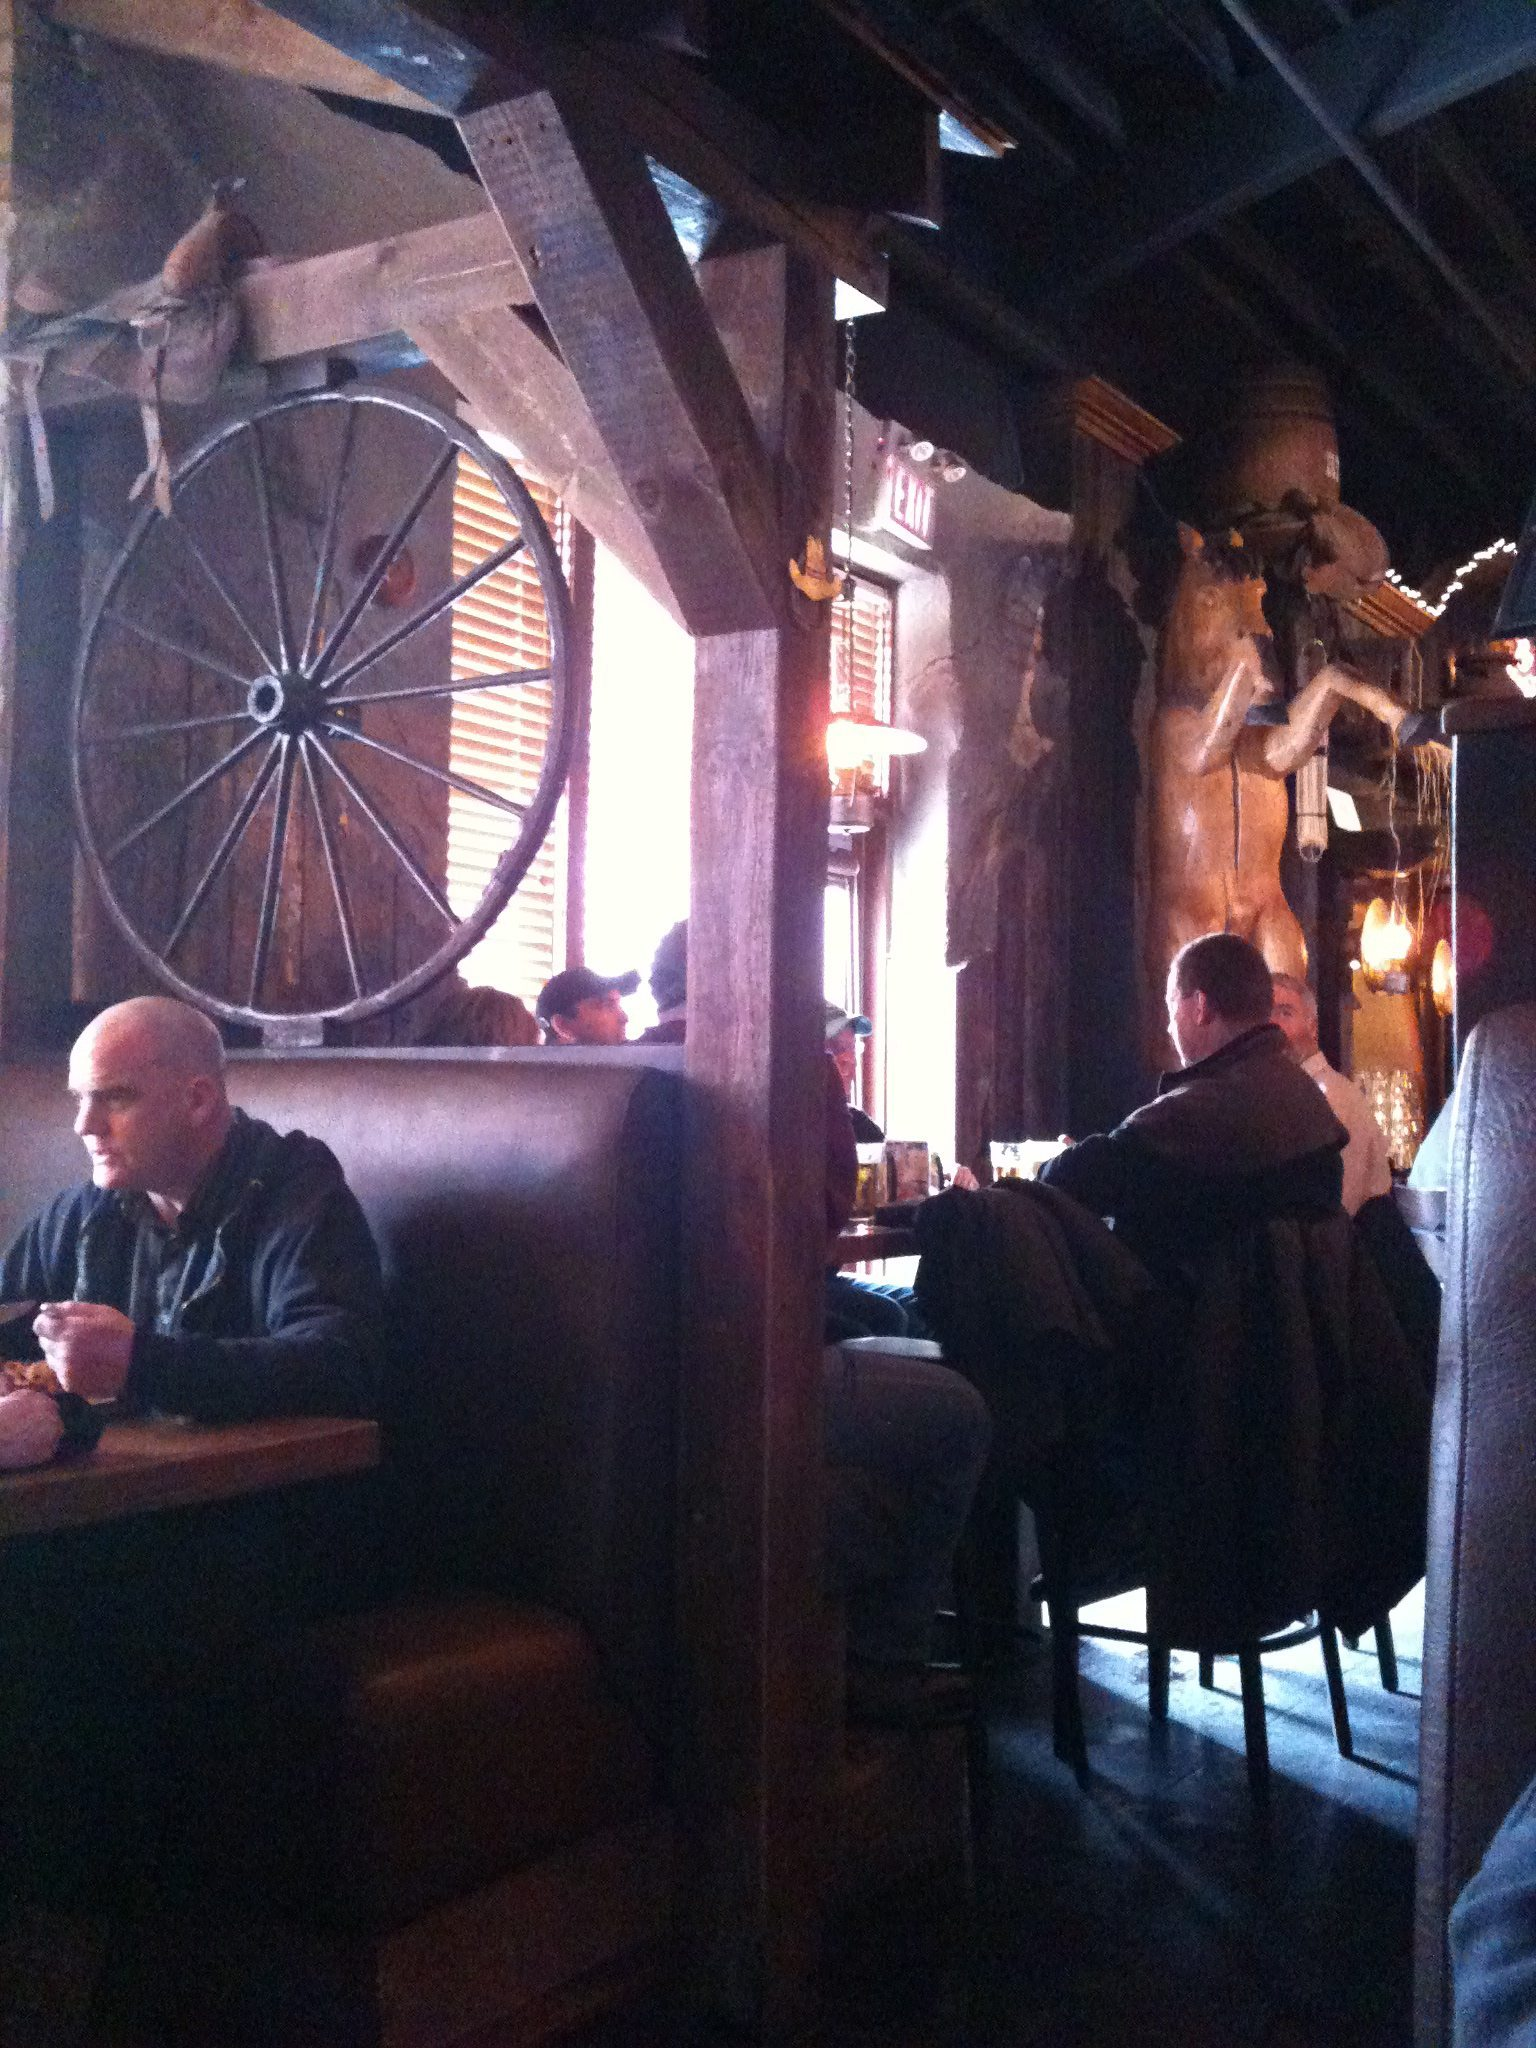 WEEKLY LUNCH PICK: At Crazy Horse your steak is served by cowgirls and cooked by you